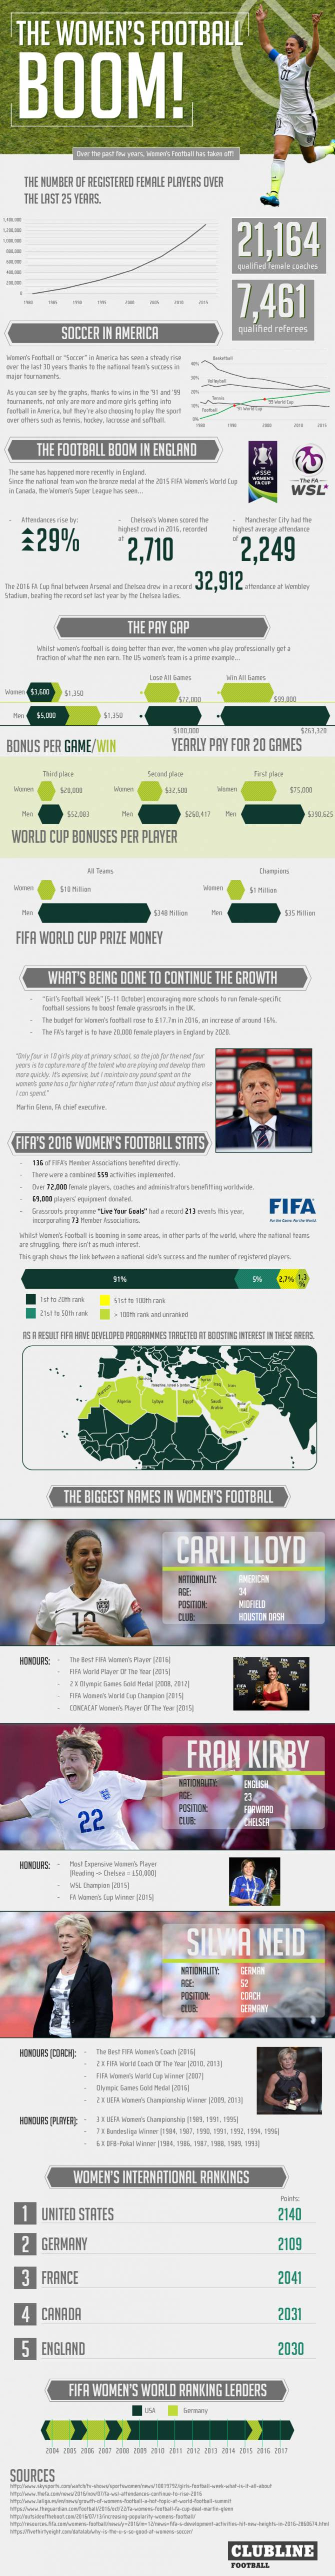 Women sport news - The Women's Football BOOM